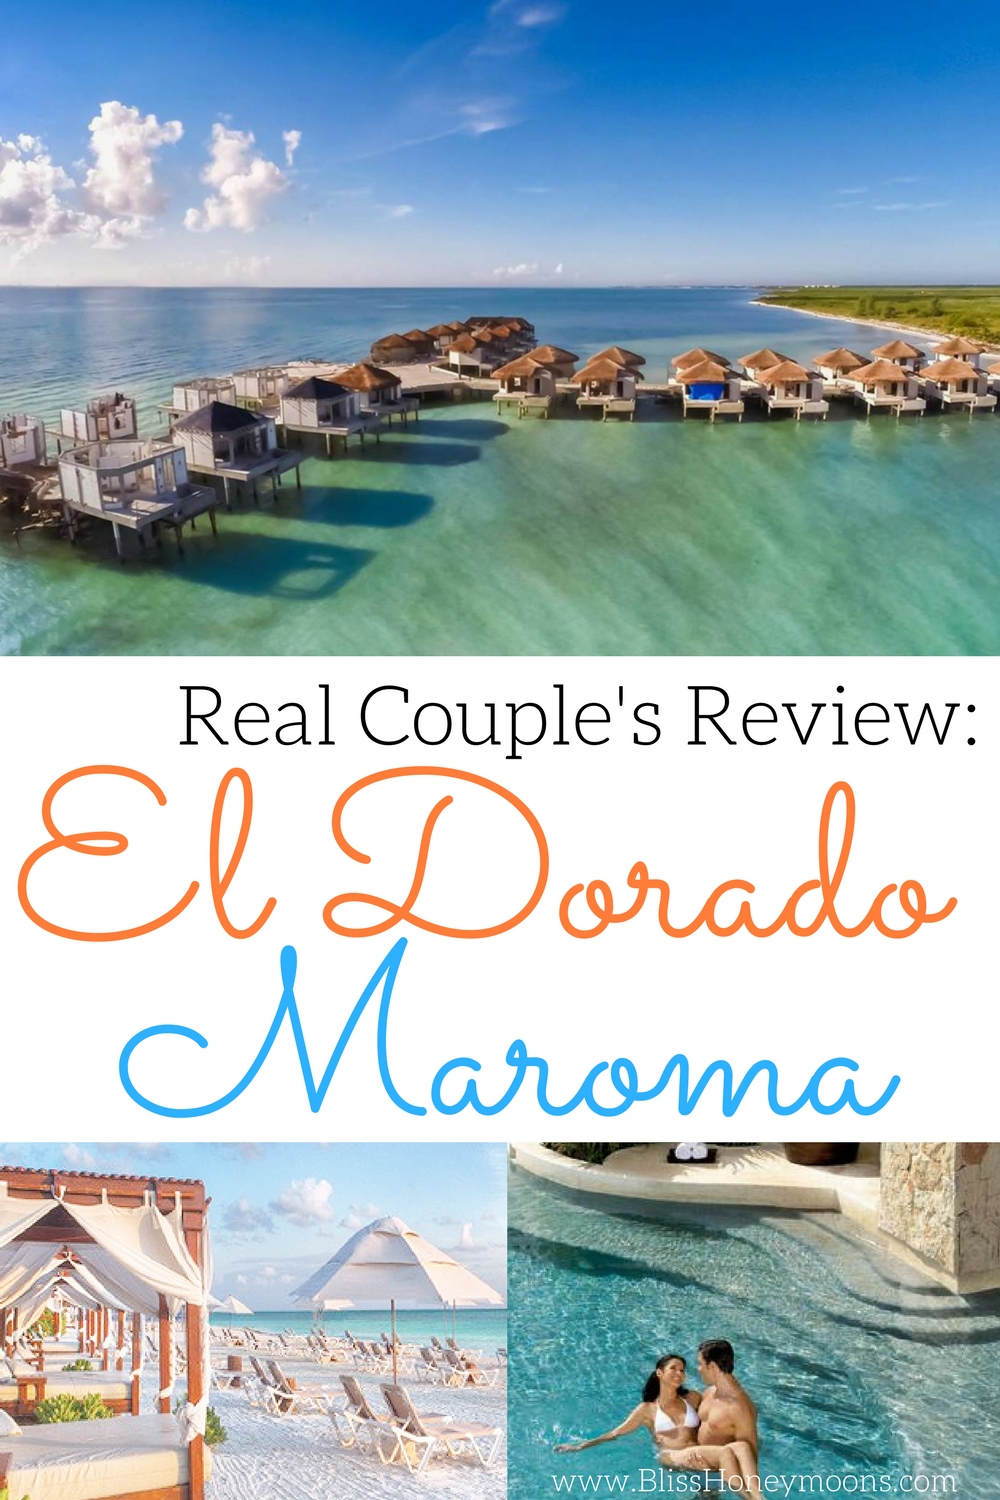 El Dorado Maroma honeymoon reviews, relaxing El Dorado Maroma, El Dorado Maroma couples review, Bliss Honeymoons reviews, real couples review El Dorado Maroma